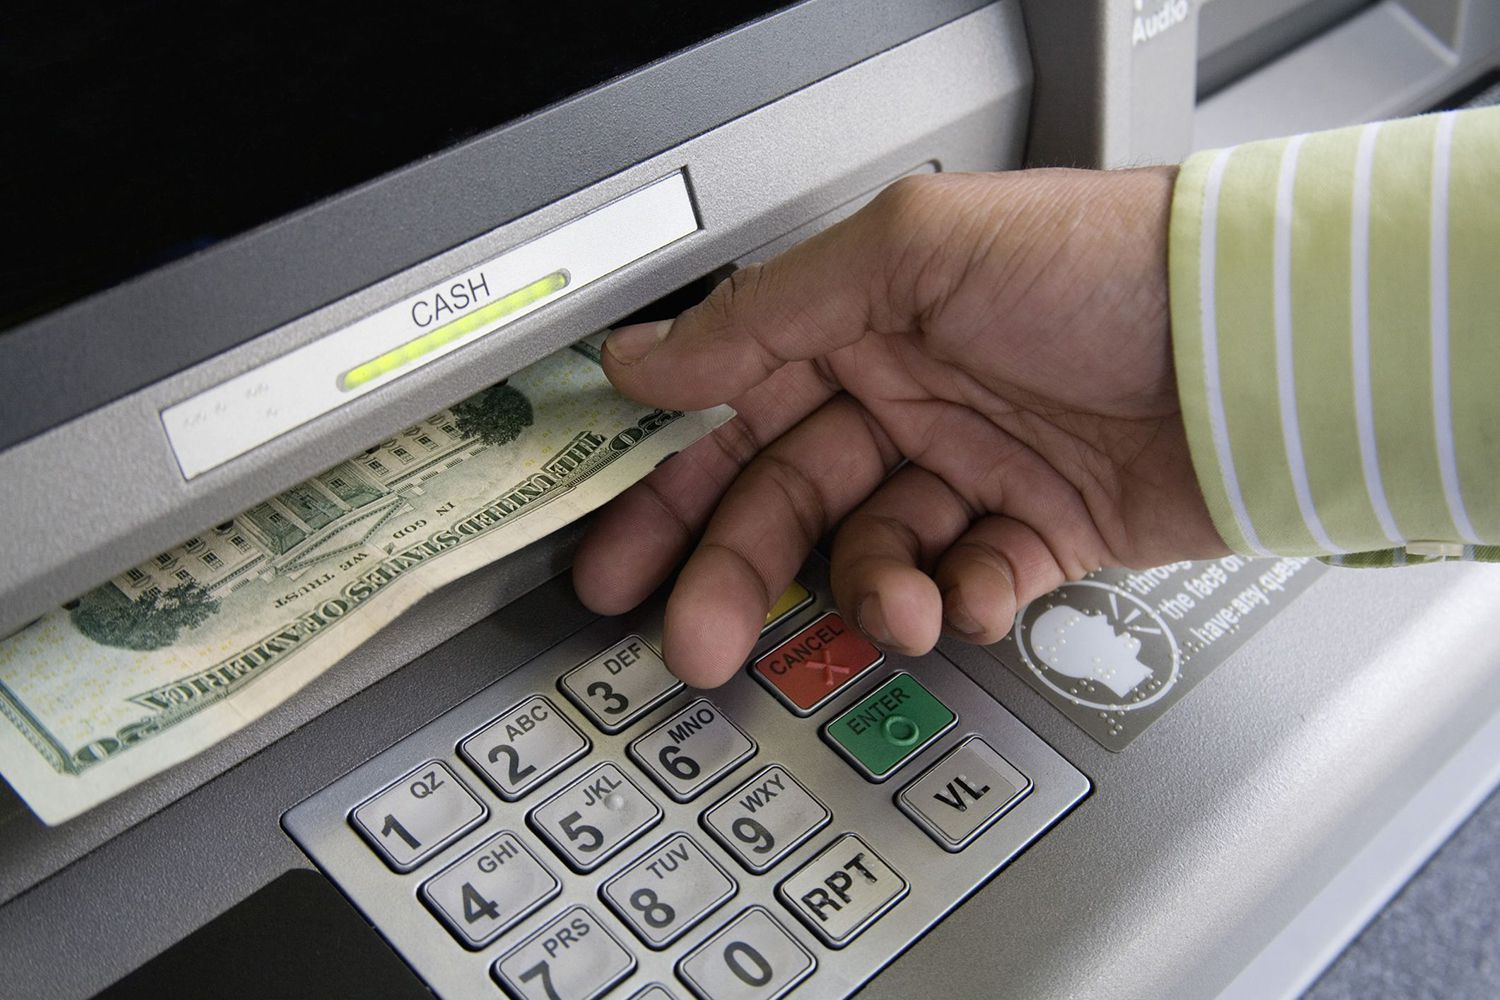 pay on Credit card cash withdrawal